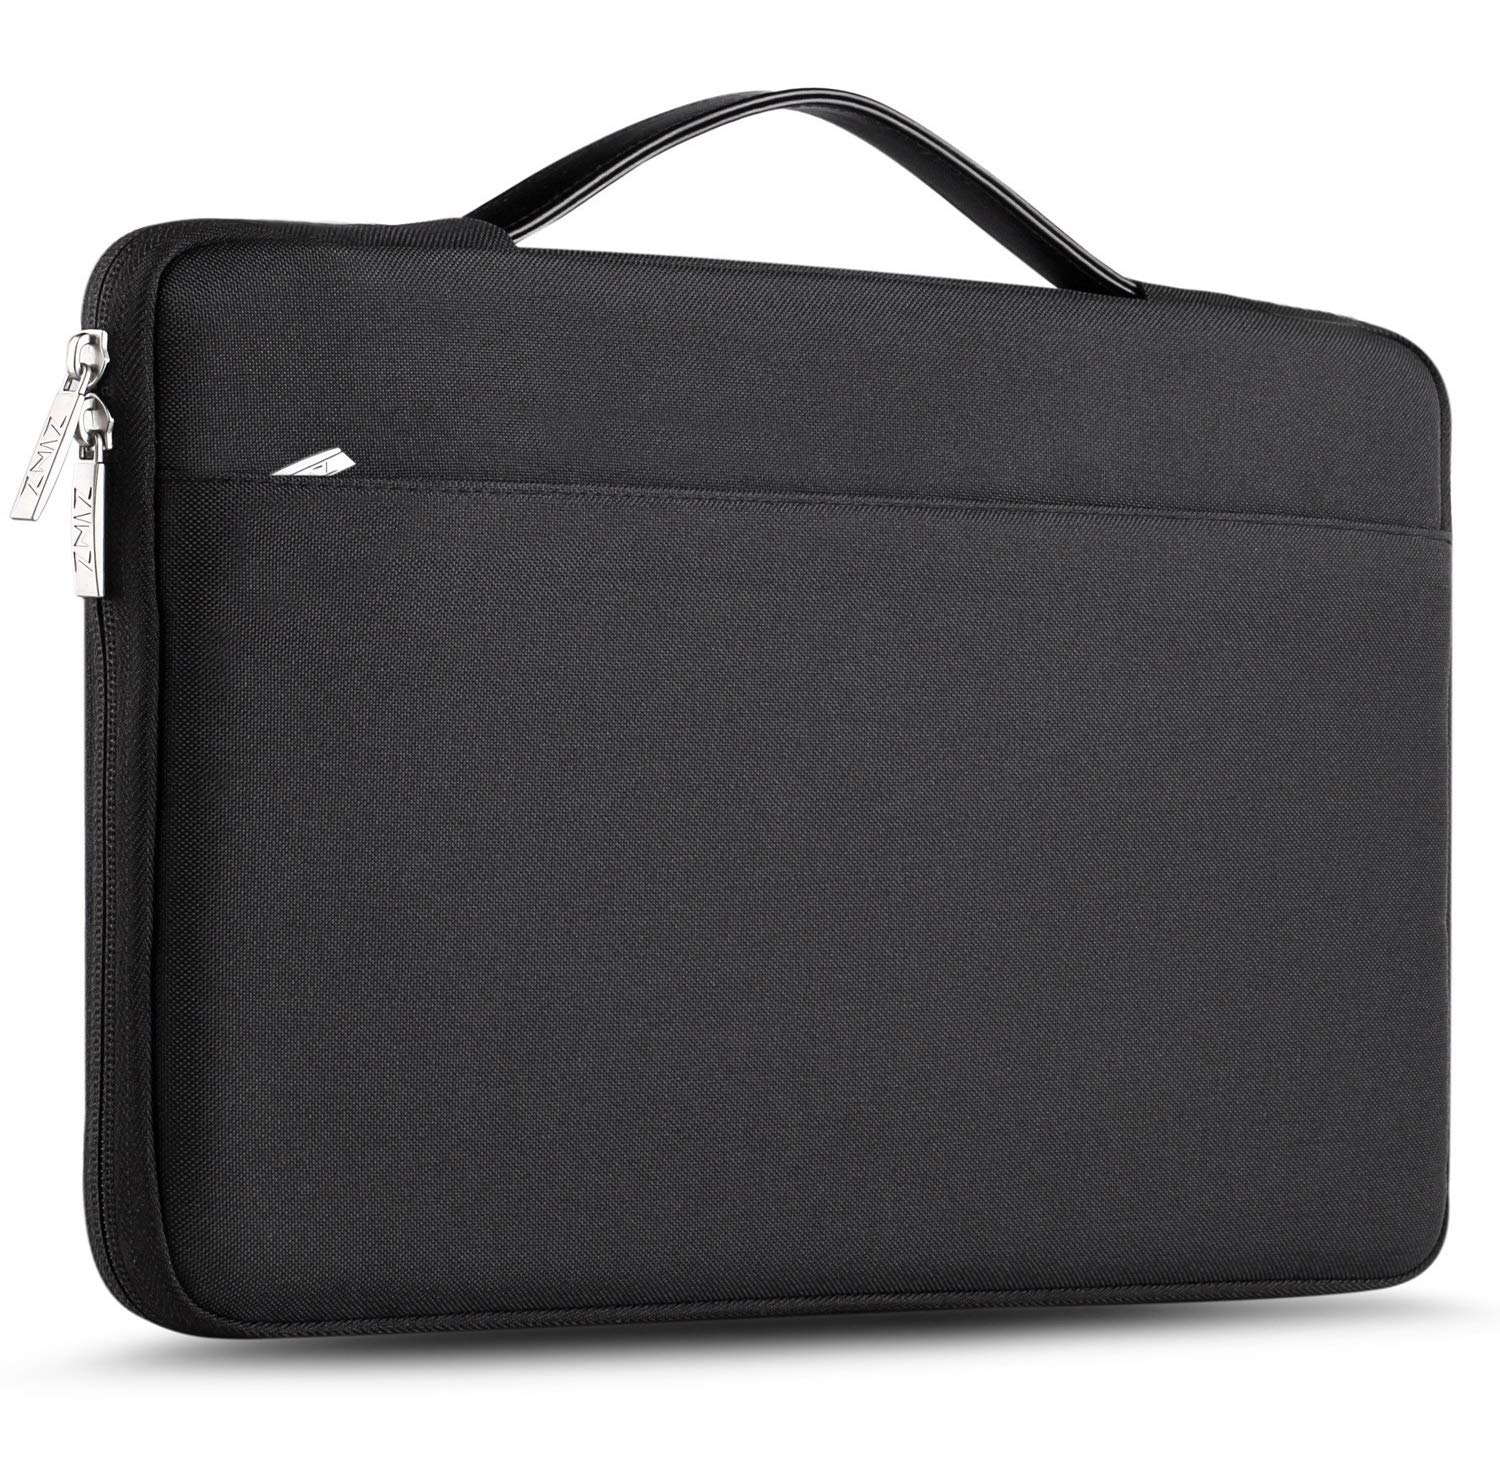 ZINZ 15-15.6 Inch Laptop Sleeve for Dell/Ausu/Acer/HP/Toshiba/Lenovo Spill-Resistant Ultrabook Netbook Tablet Bag Case Cover -Black